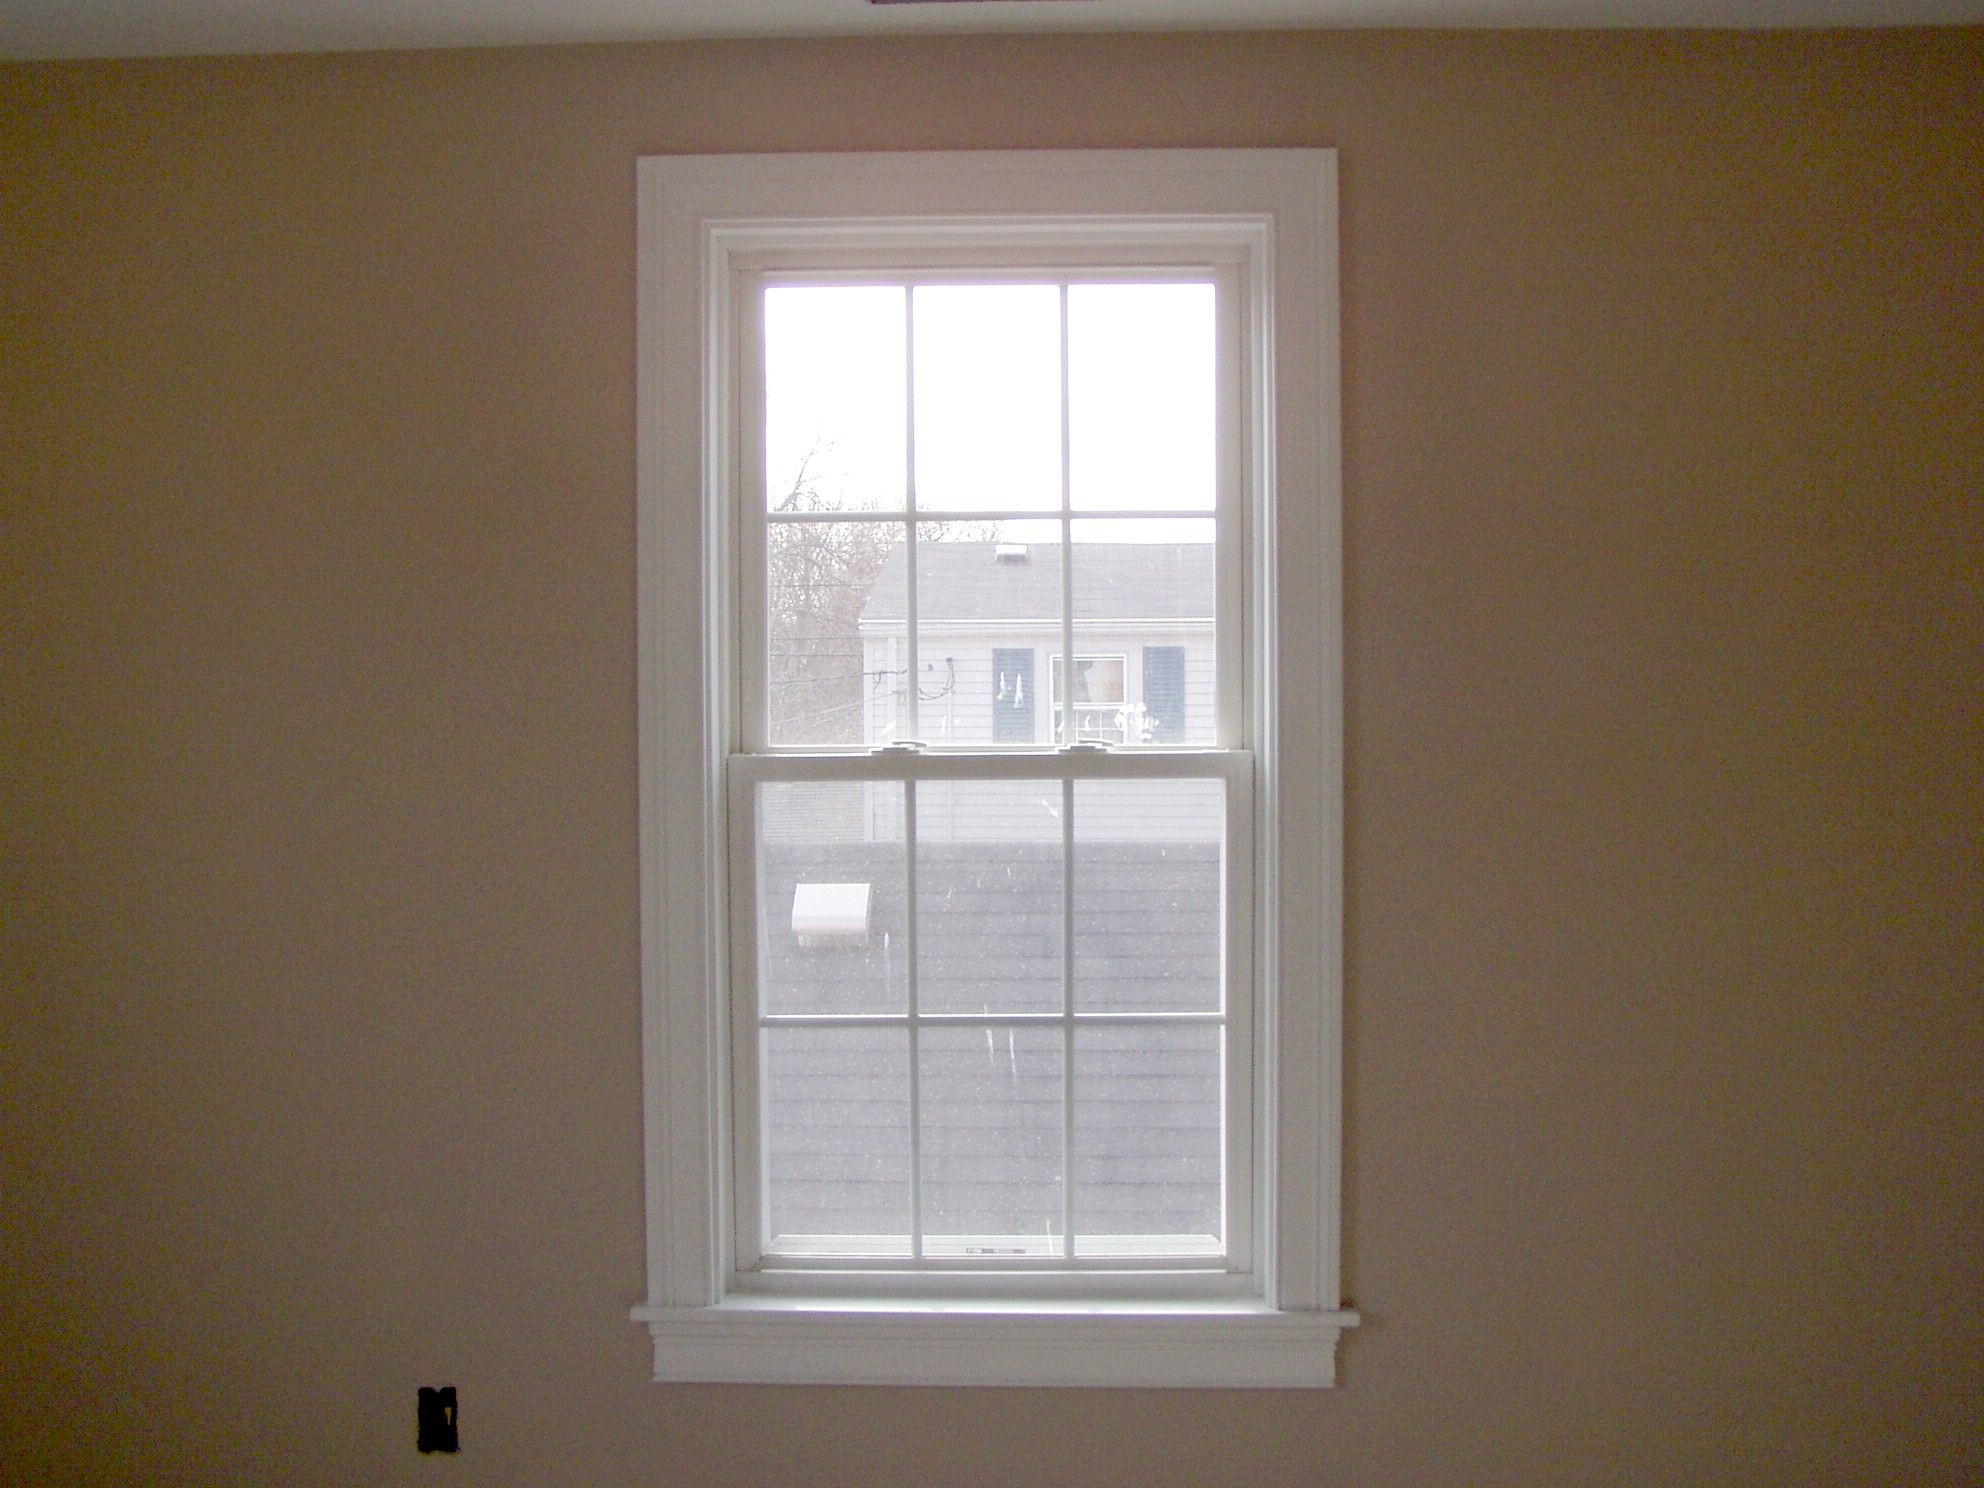 New Construction Door Trim Paint And Window Trim Master Closet With Paint And Trim Interior Windows Interior Window Trim Window Trim Styles